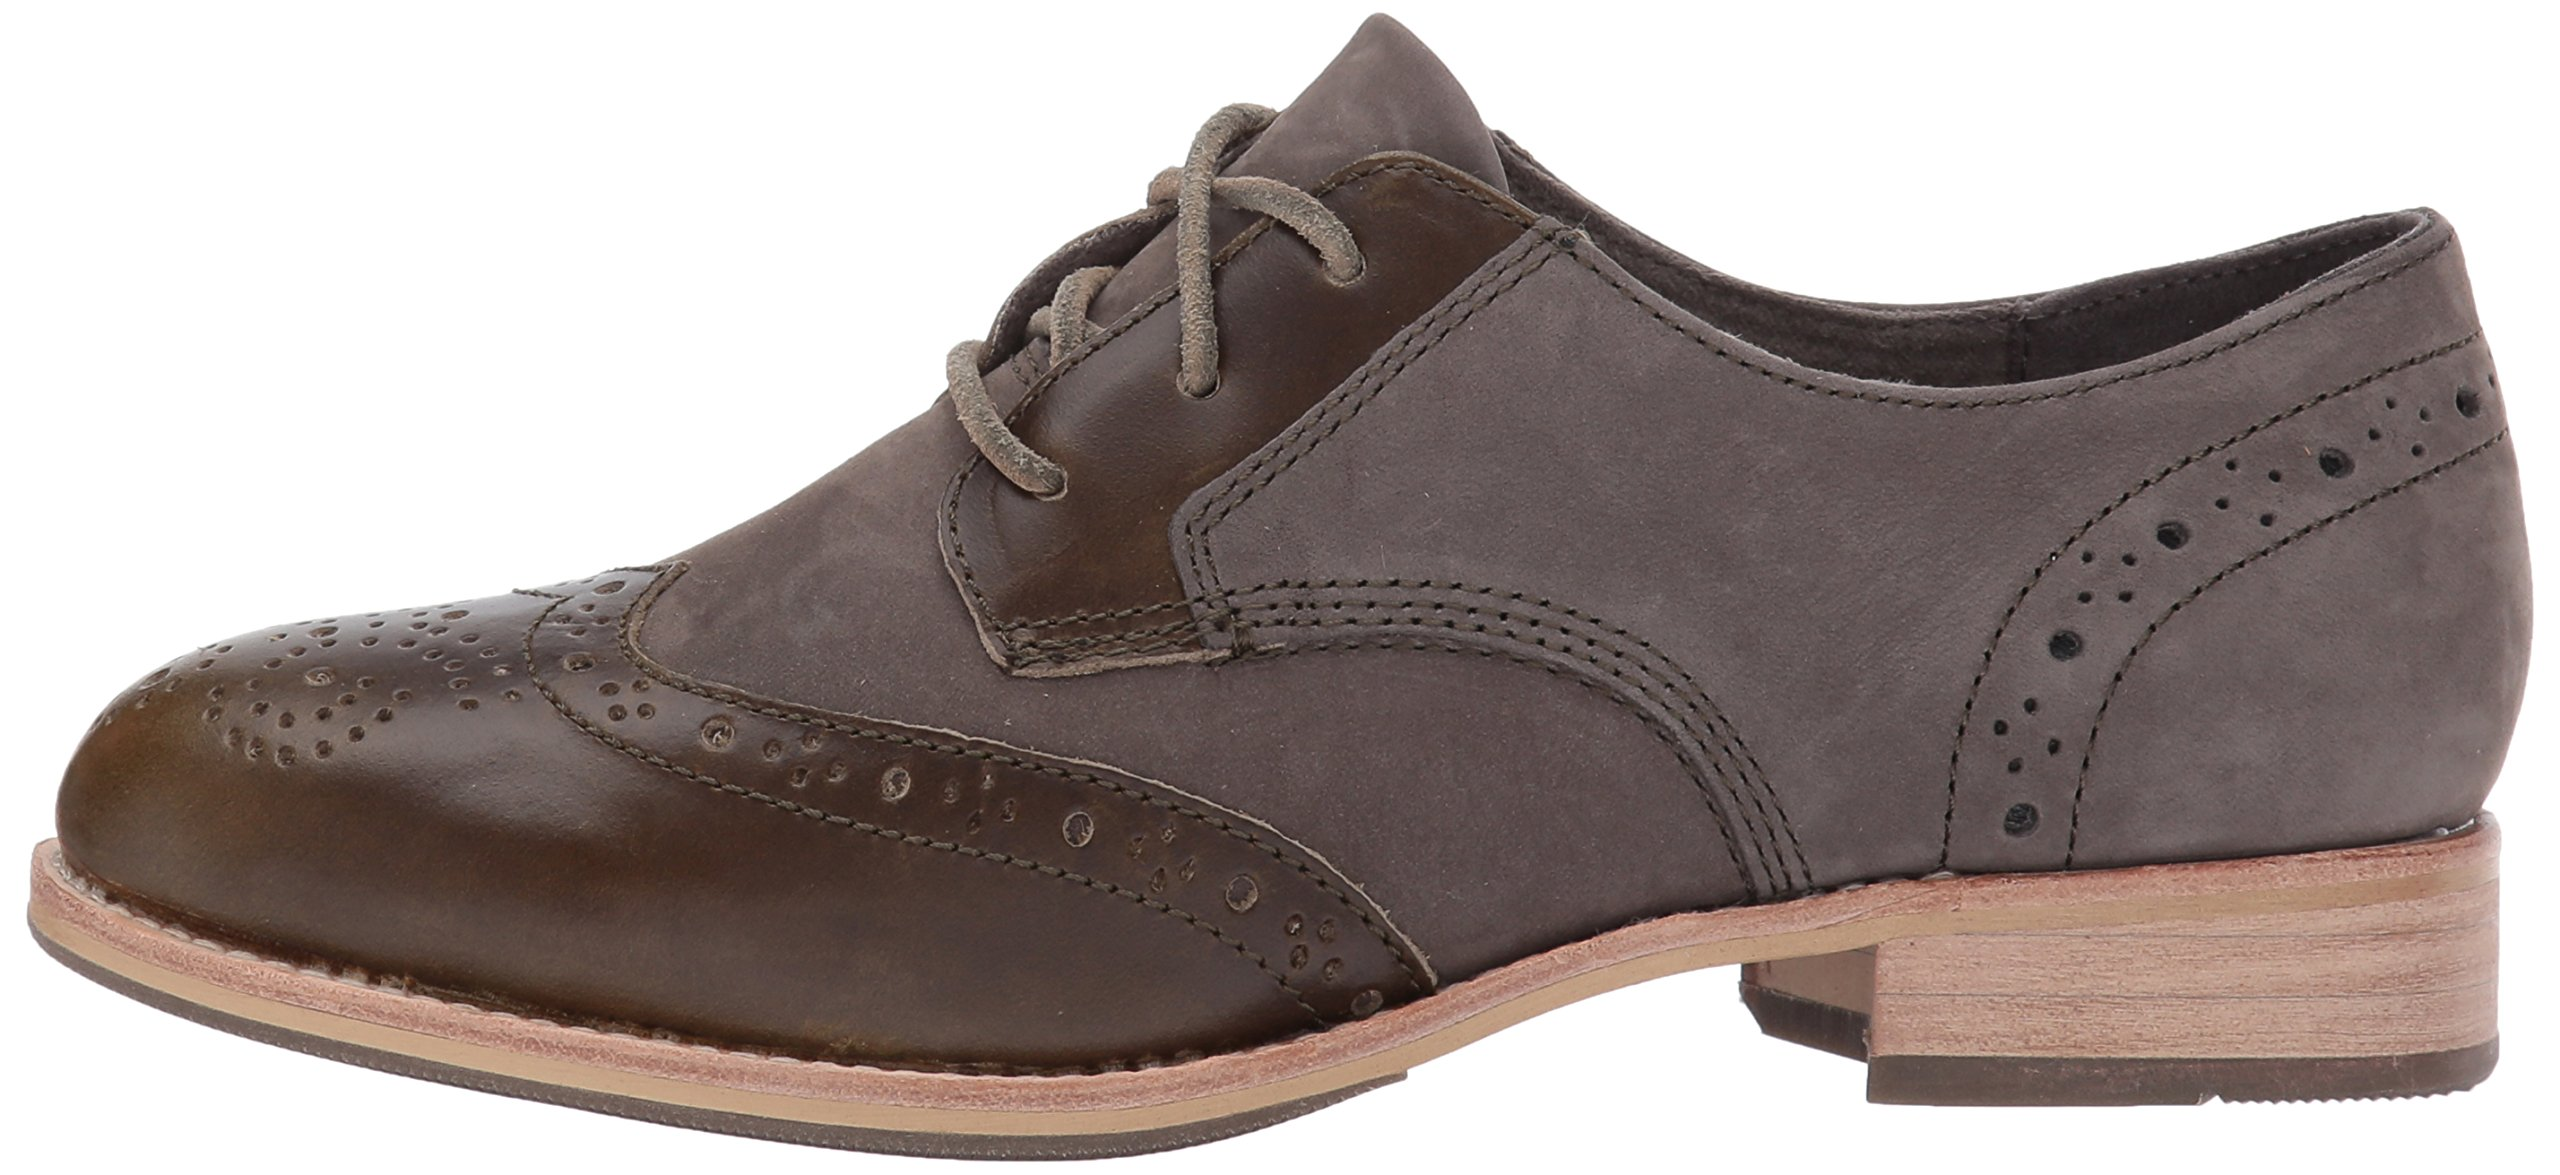 Caterpillar Women's Reegan II Lace up Leather Oxford, Olive, 5.5 Medium US by Caterpillar (Image #5)